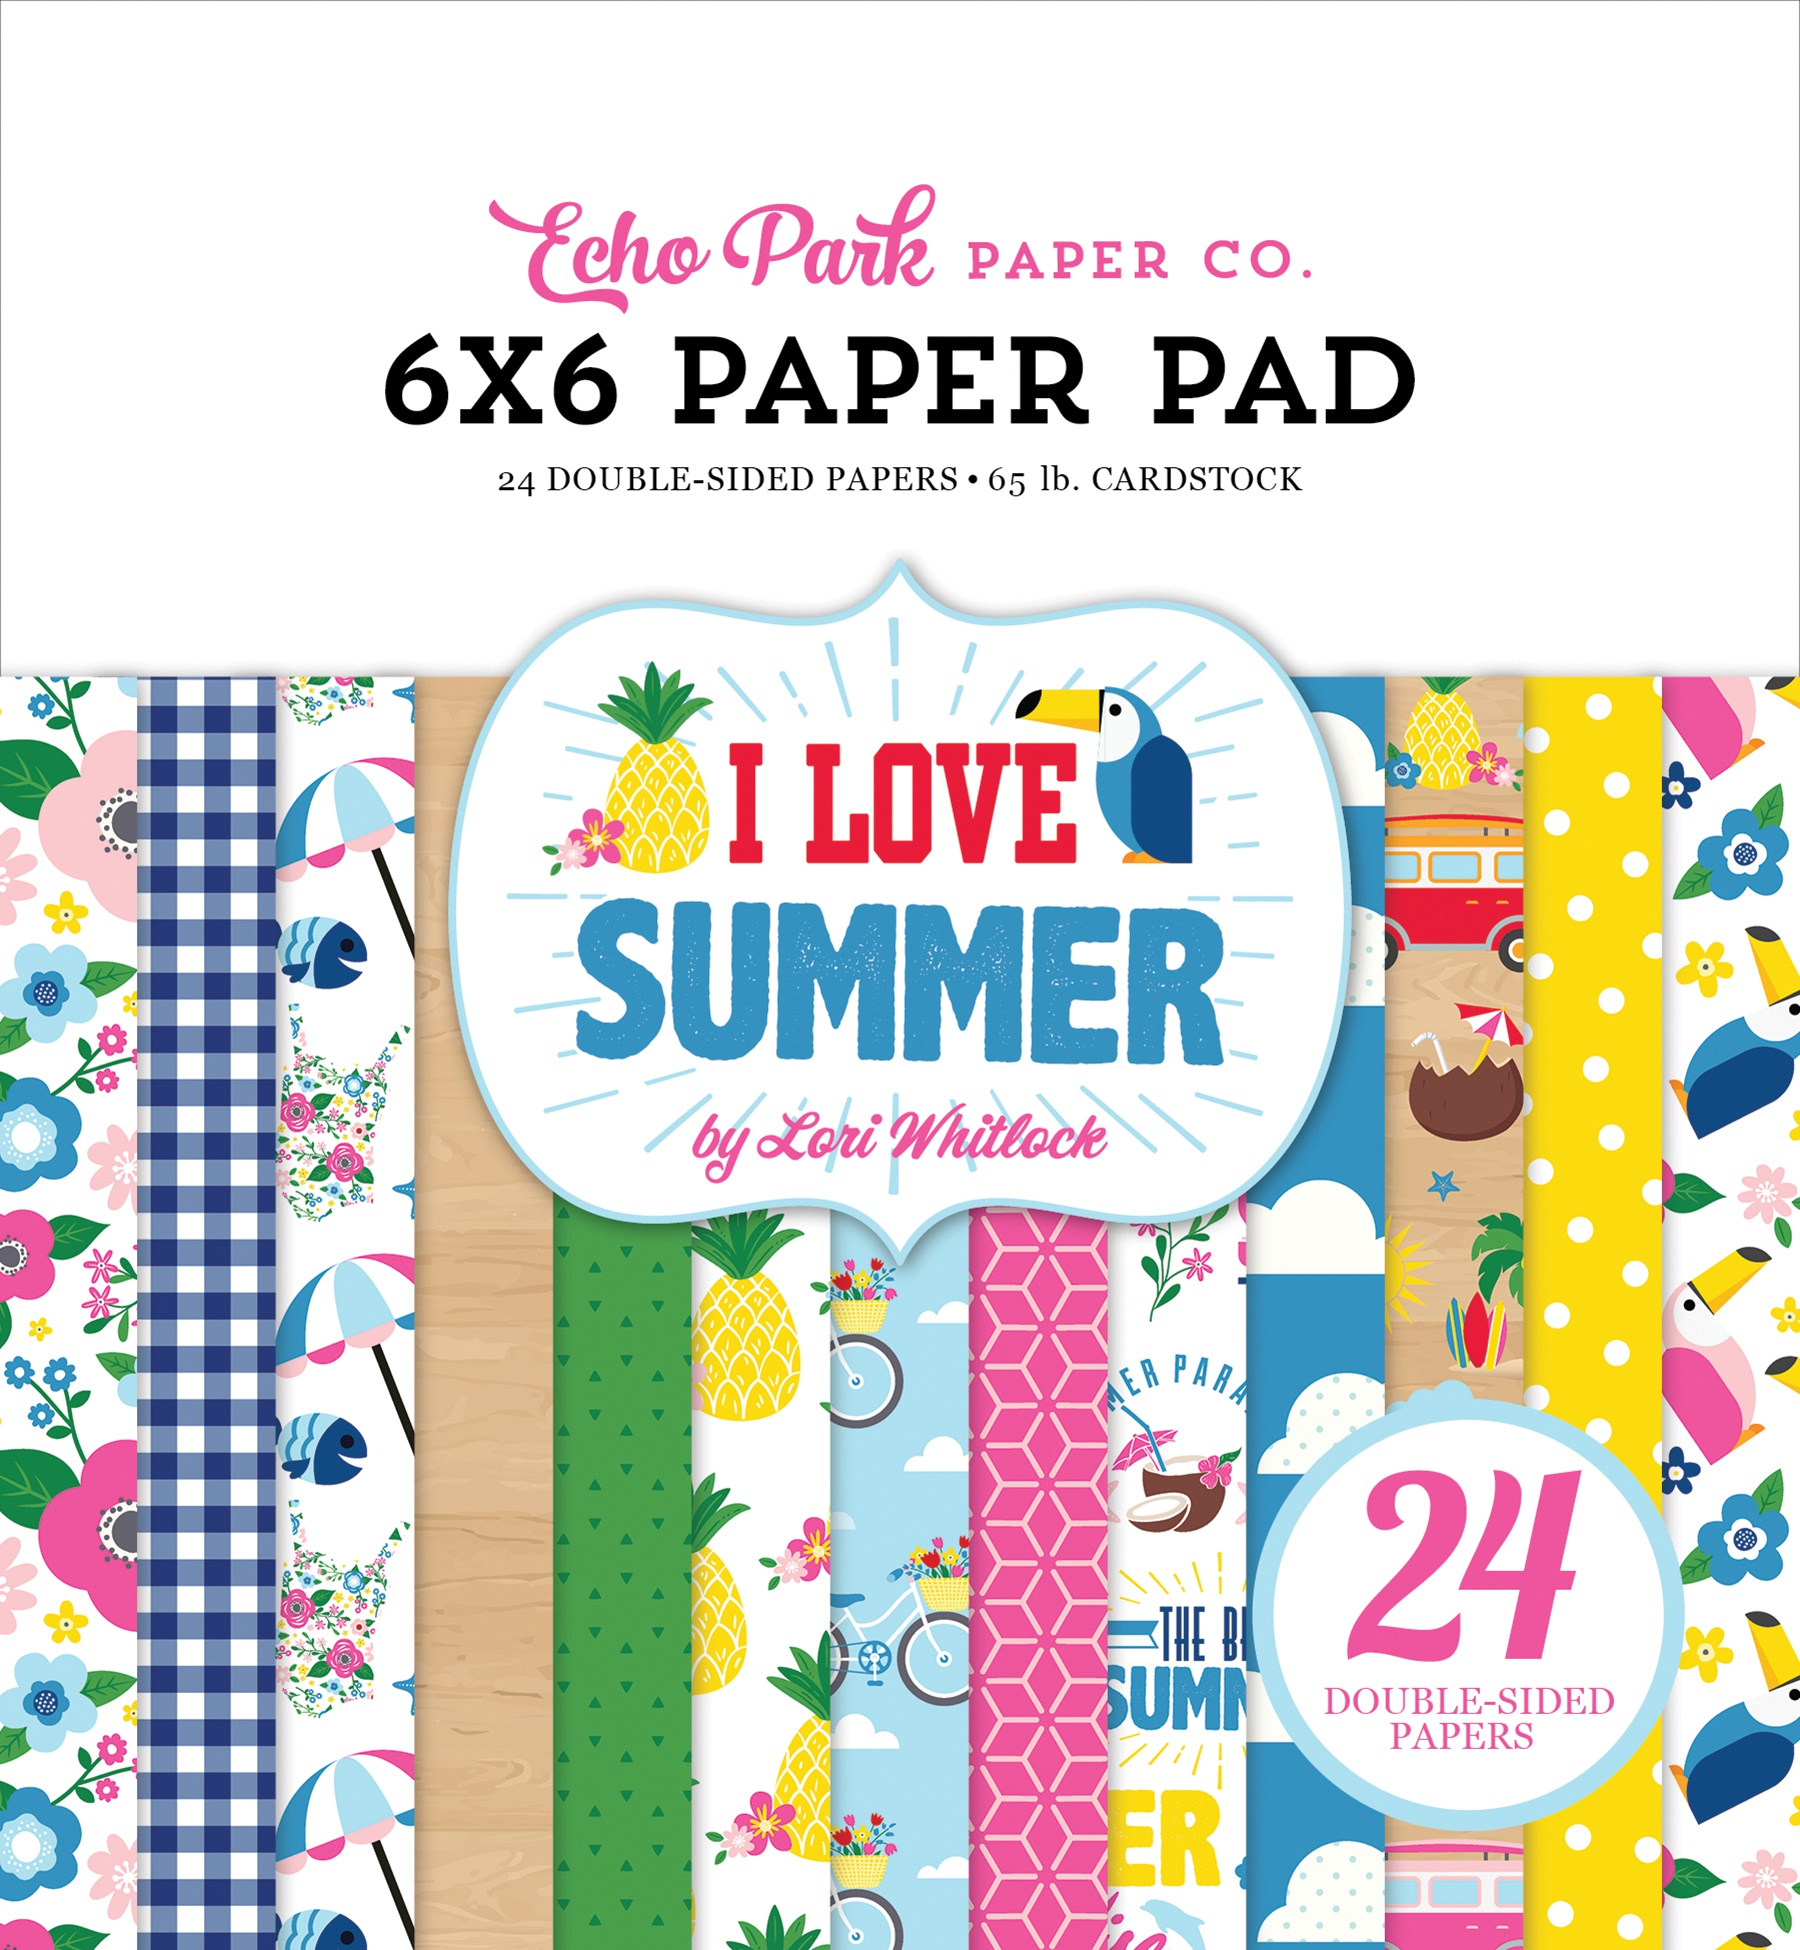 Echo Park Double-Sided Paper Pad 6X6 24/Pkg-I Love Summer, 12 Designs/2 Each